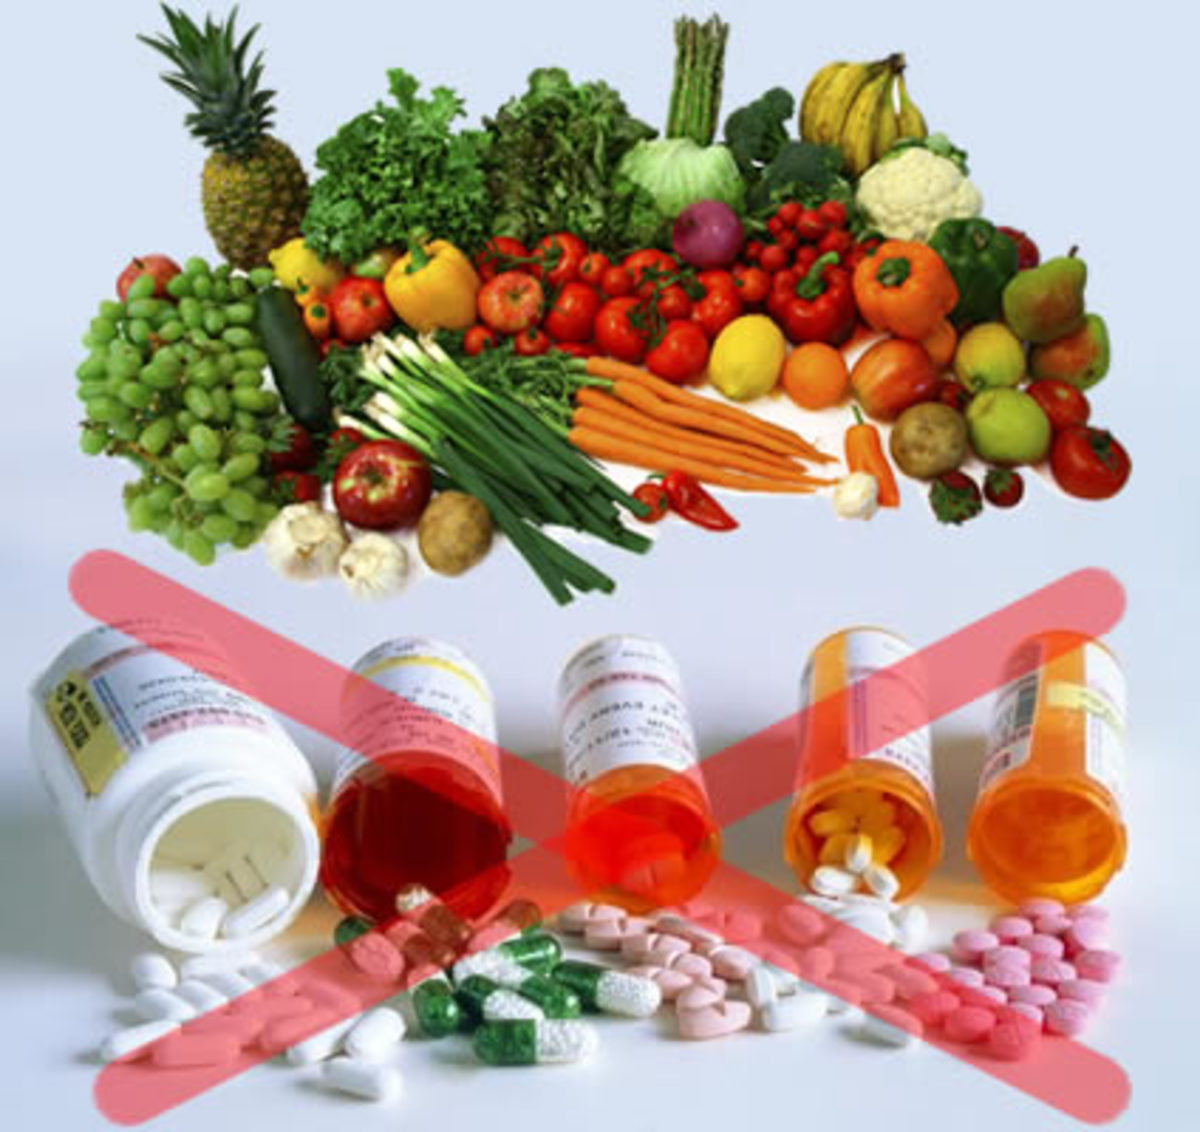 Do the Natural way - Fresh fruits and veggies EVERYDAY!